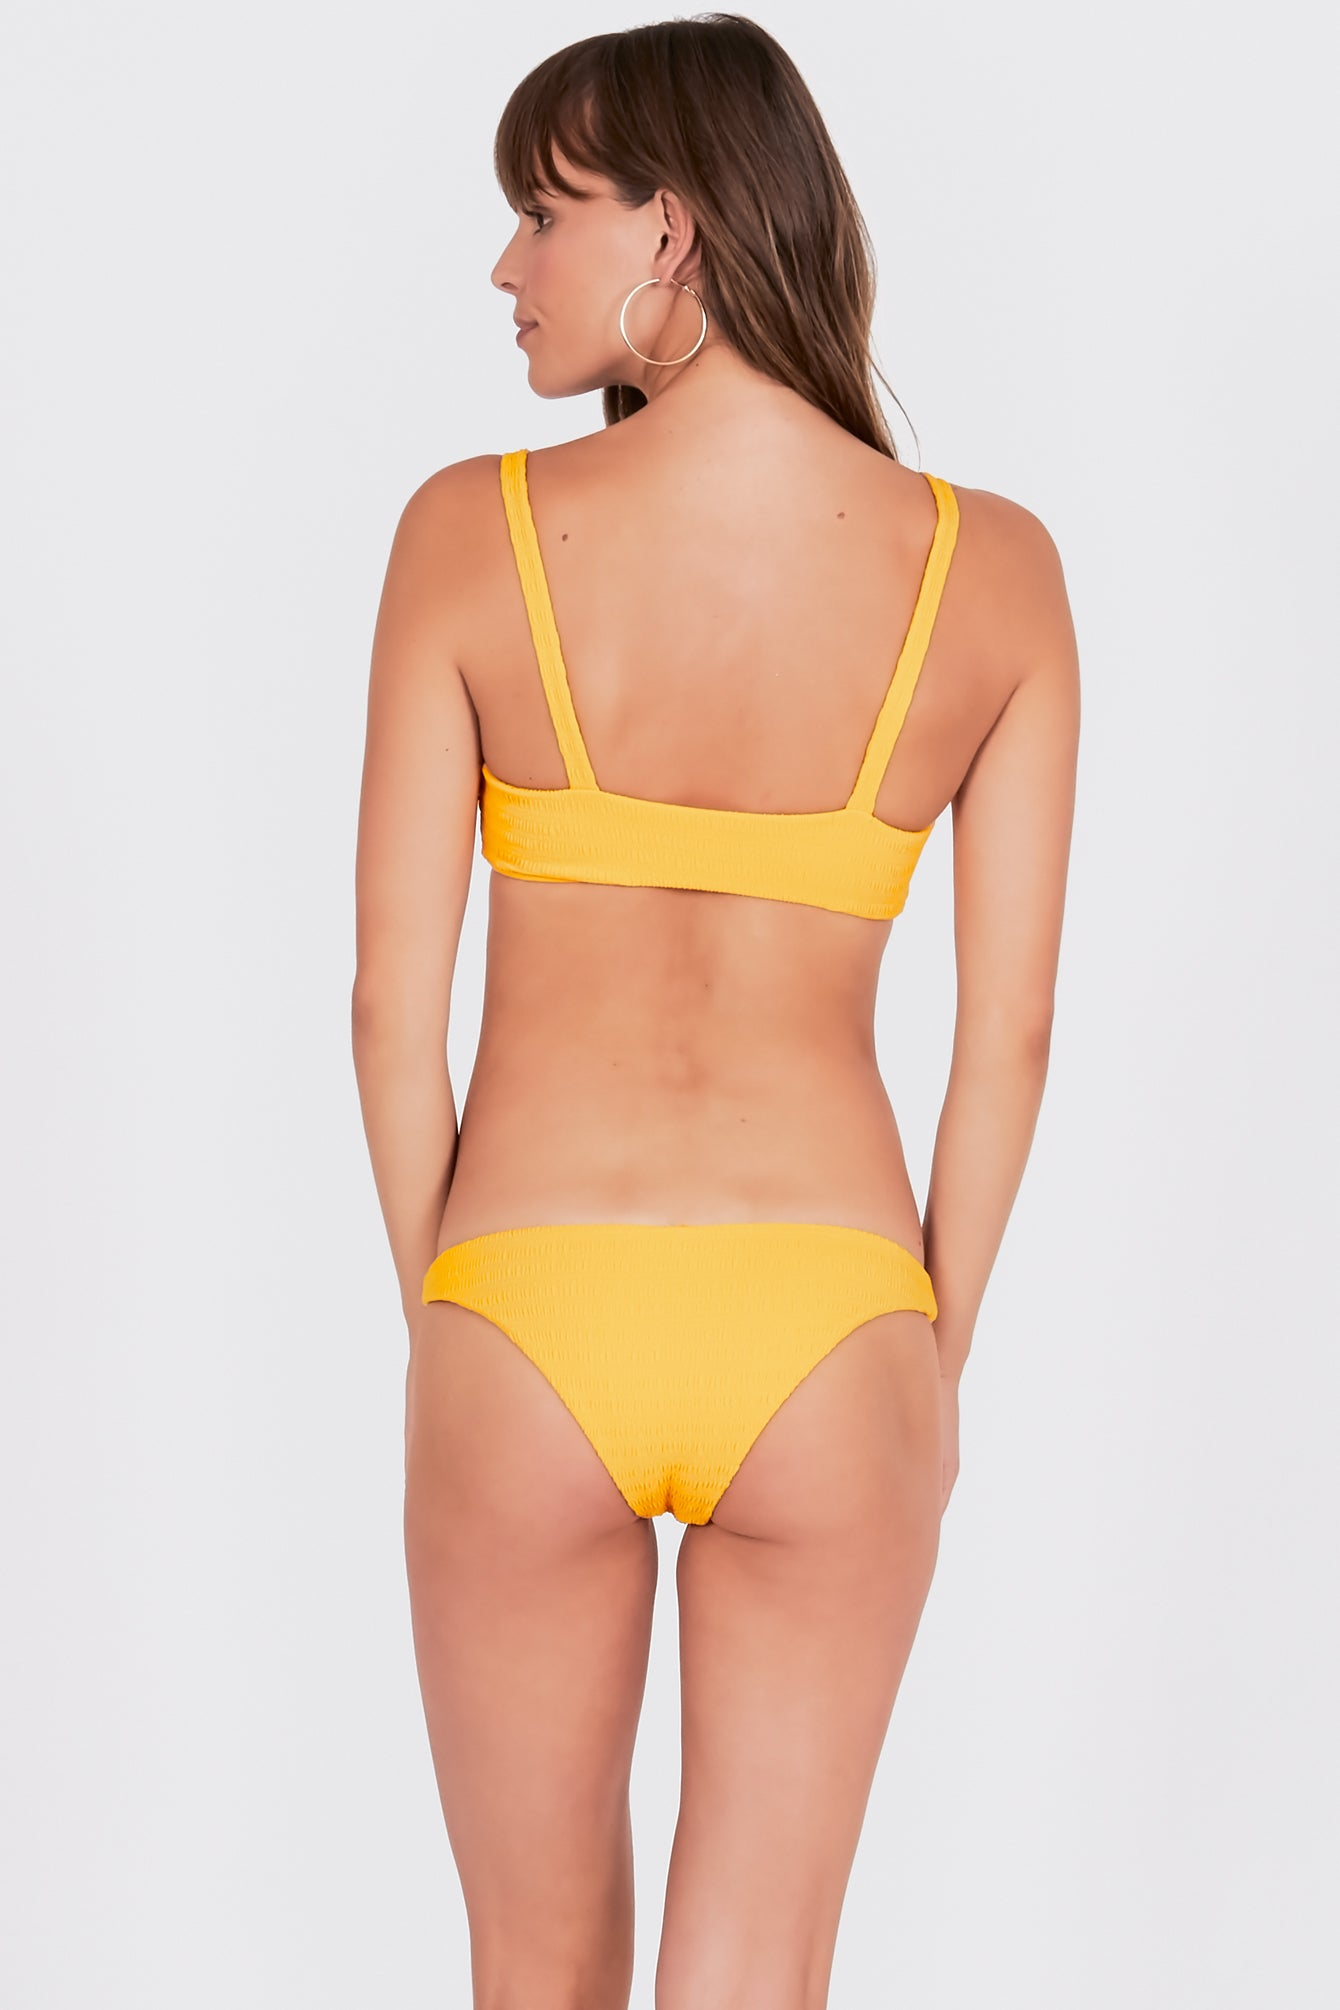 mode, irena bralette swim top